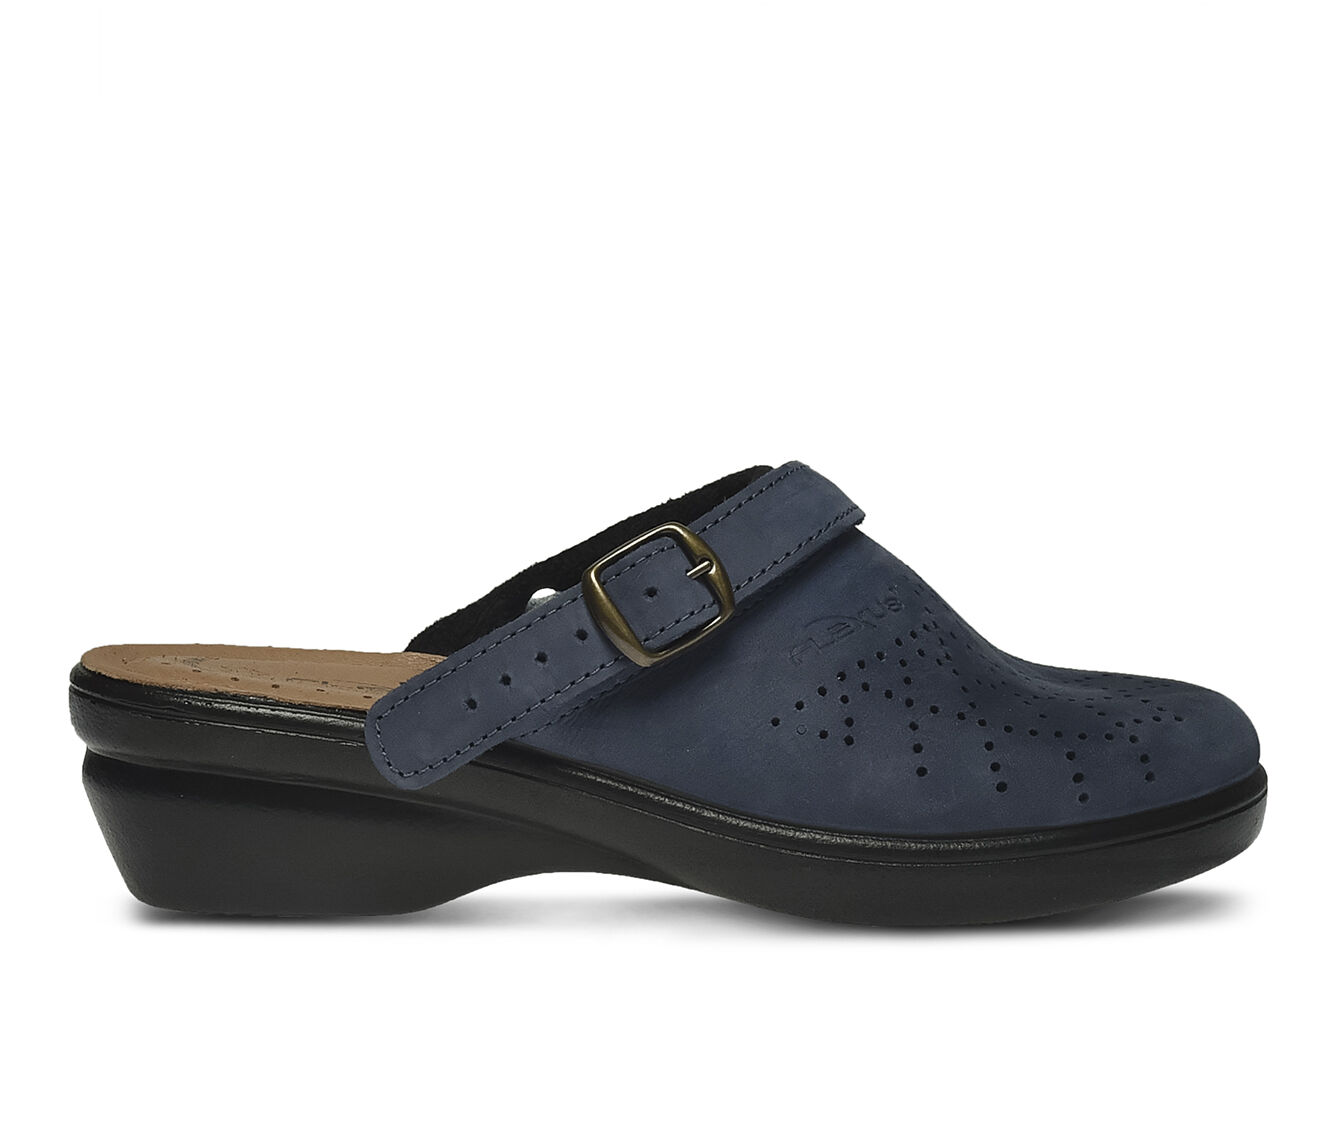 Women's FLEXUS Pride Clogs Navy